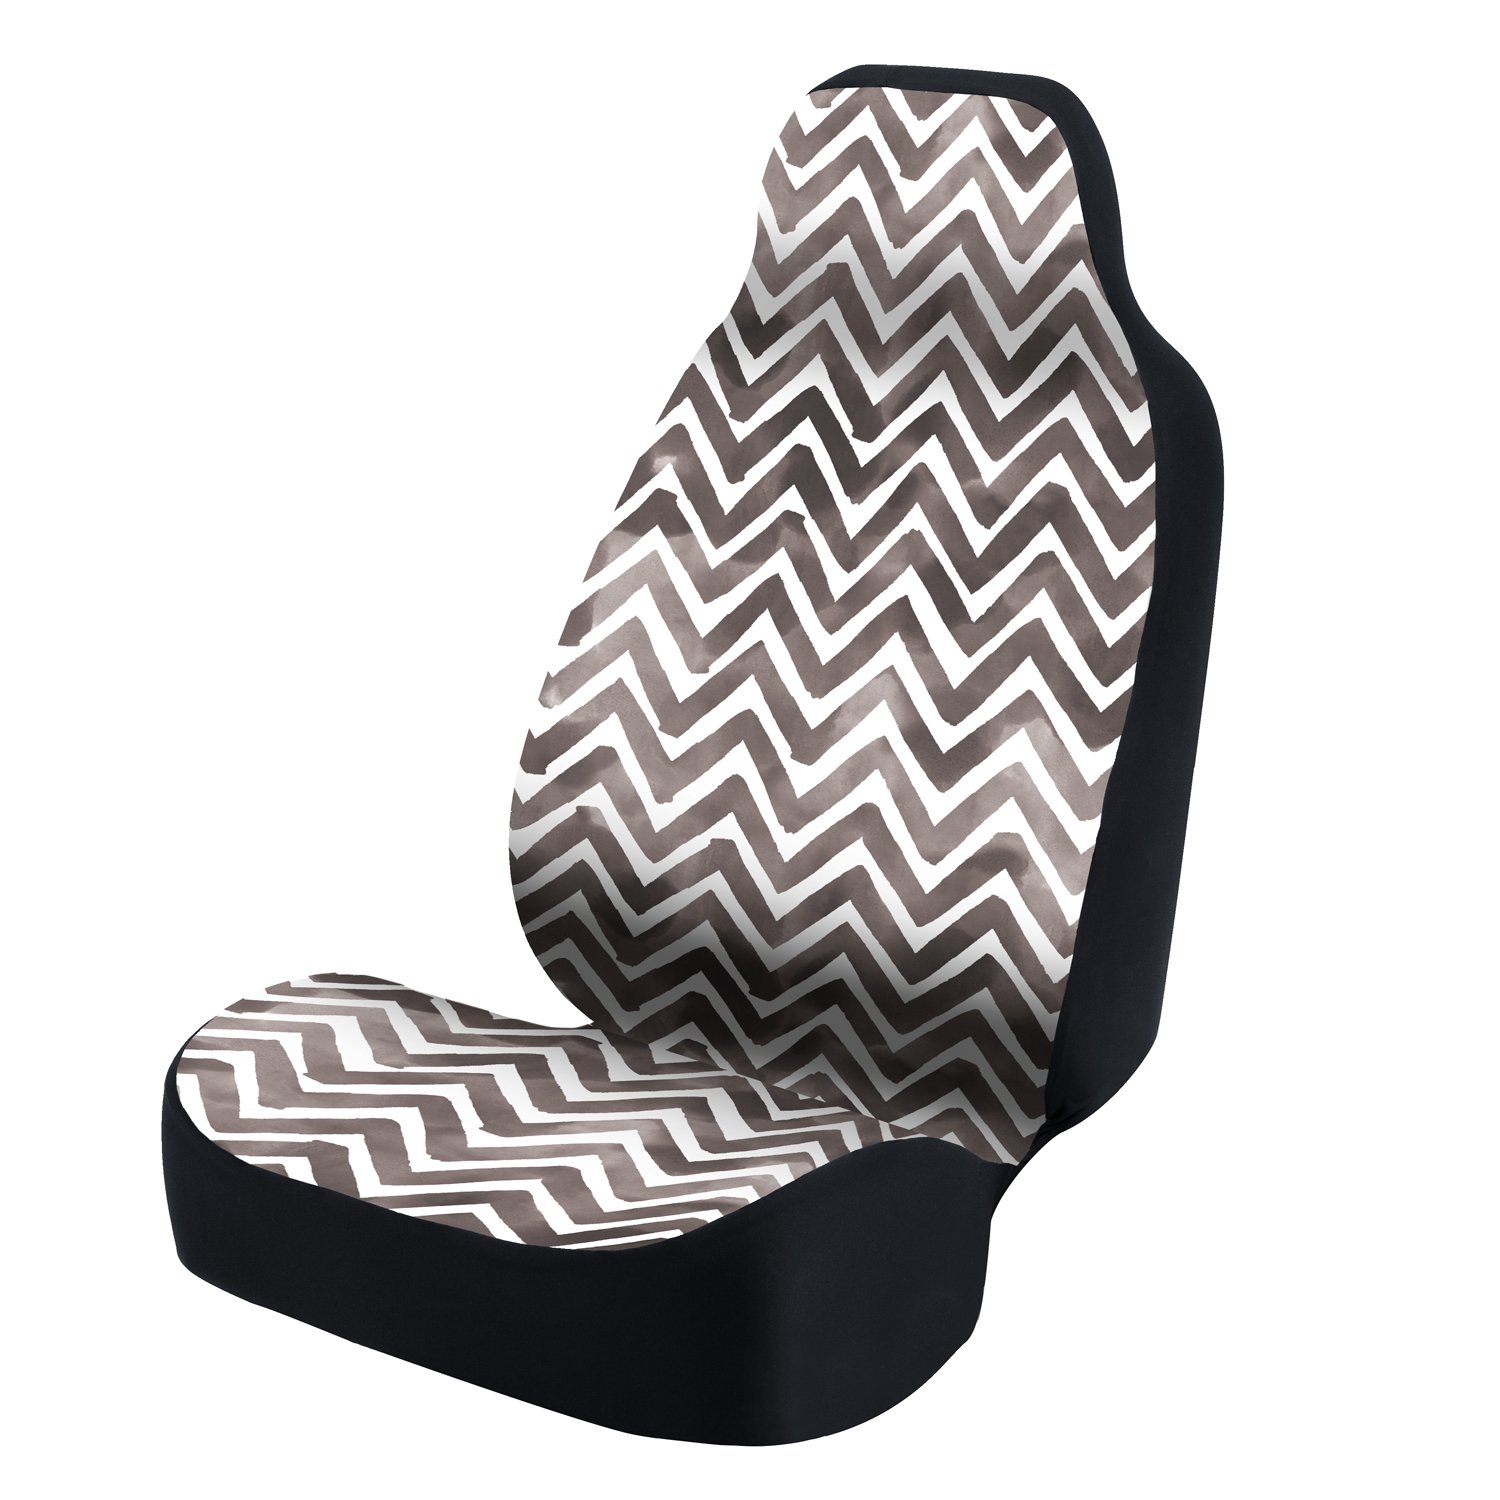 Coverking USCGFS0AD Universal Seat Cover